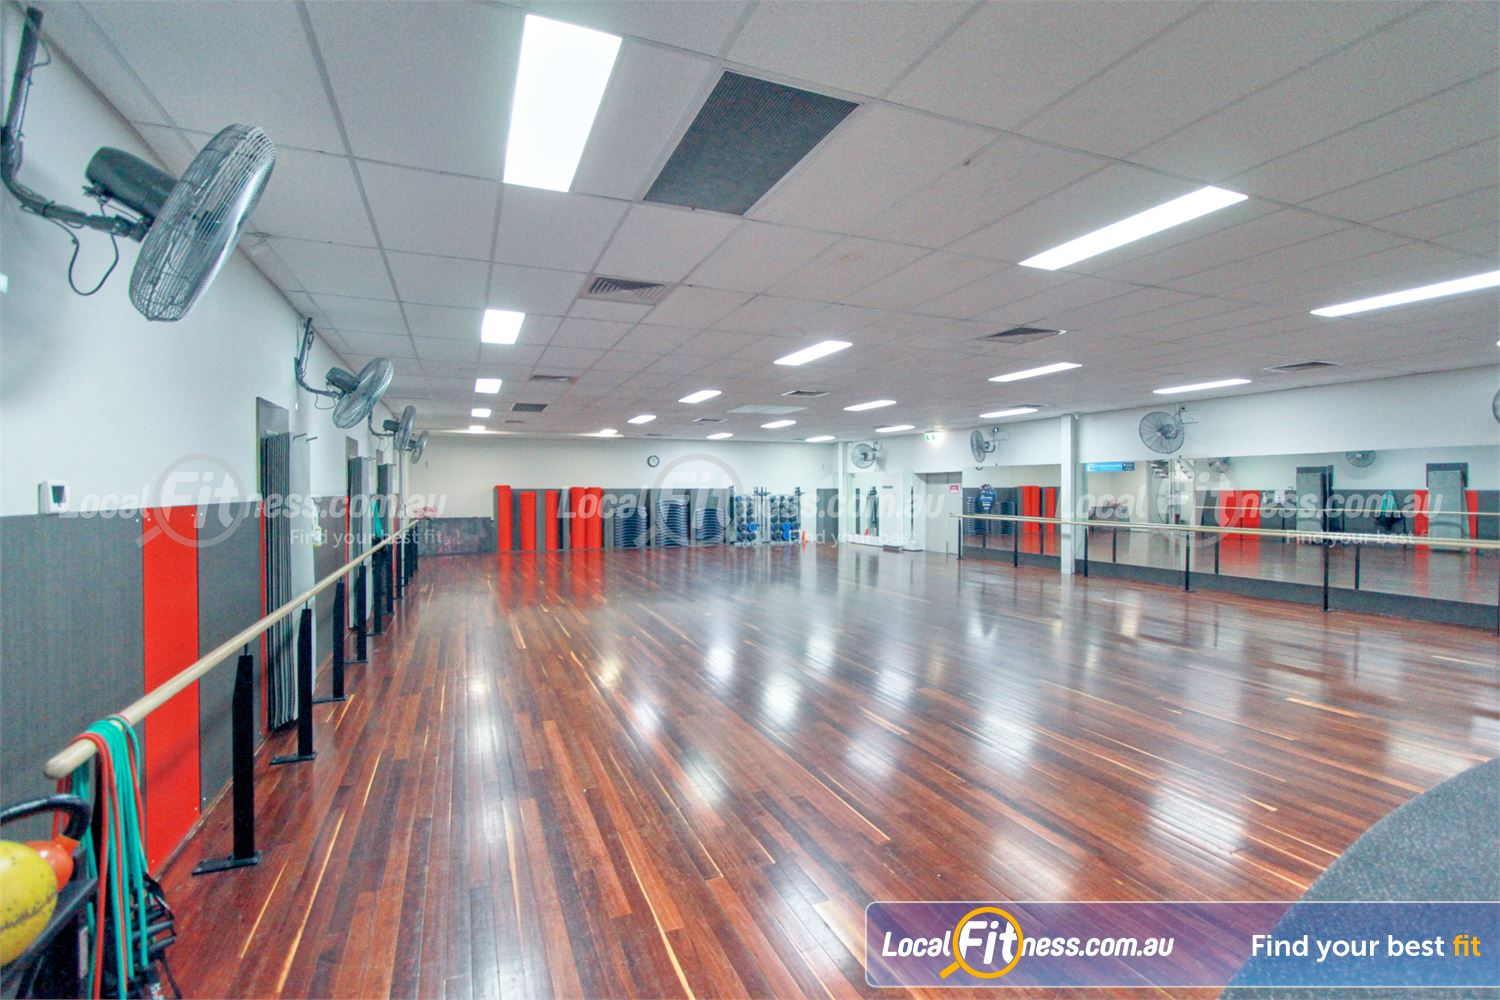 Goodlife Health Clubs Near Montrose Popular classes inc. Mooroolbark Yoga, Pilates, Boxing and more.